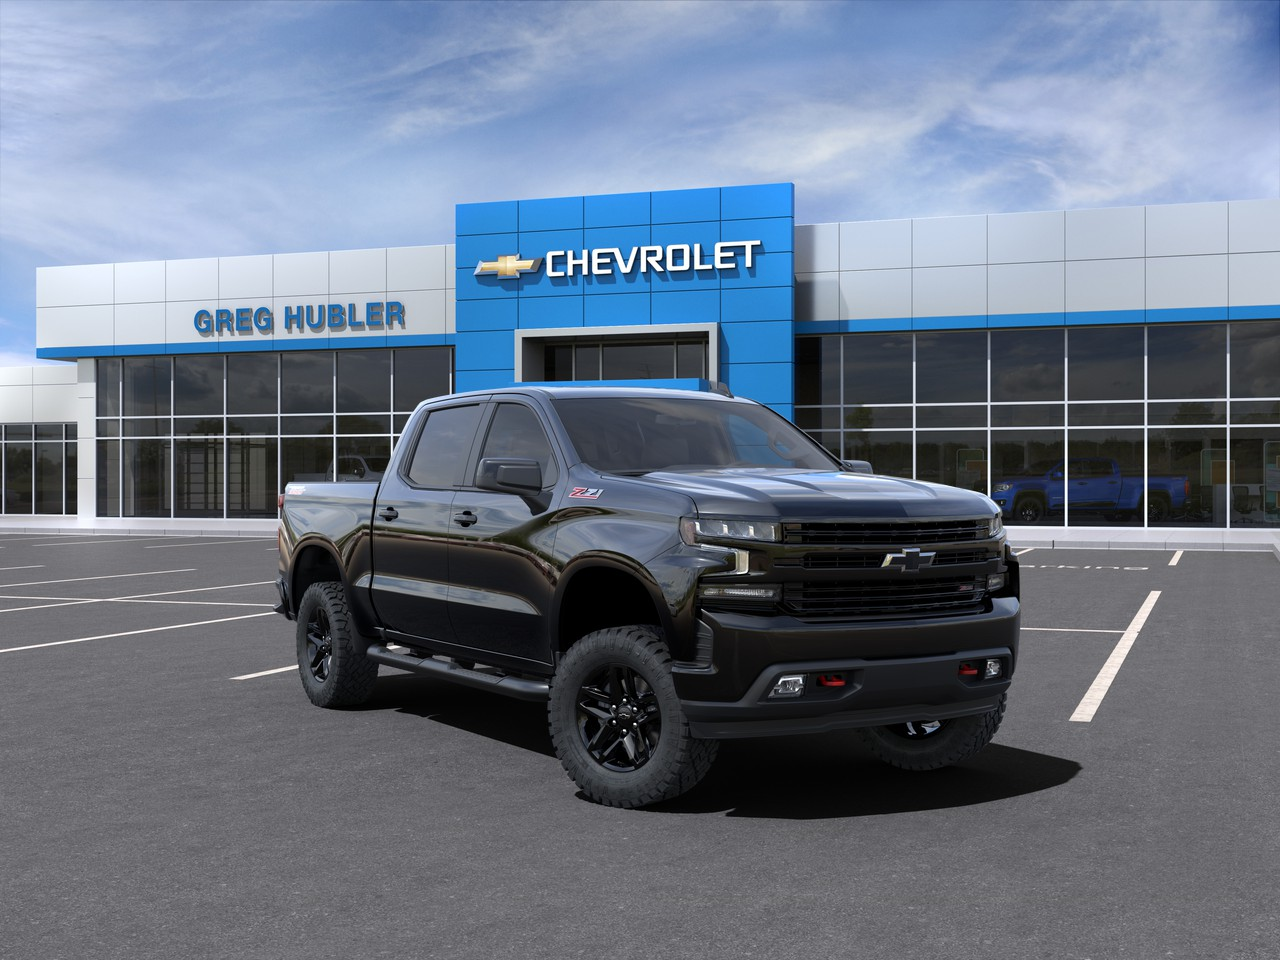 New 2021 Chevrolet Silverado 1500 LT Trail Boss FOUR WHEEL DRIVE Crew Cab